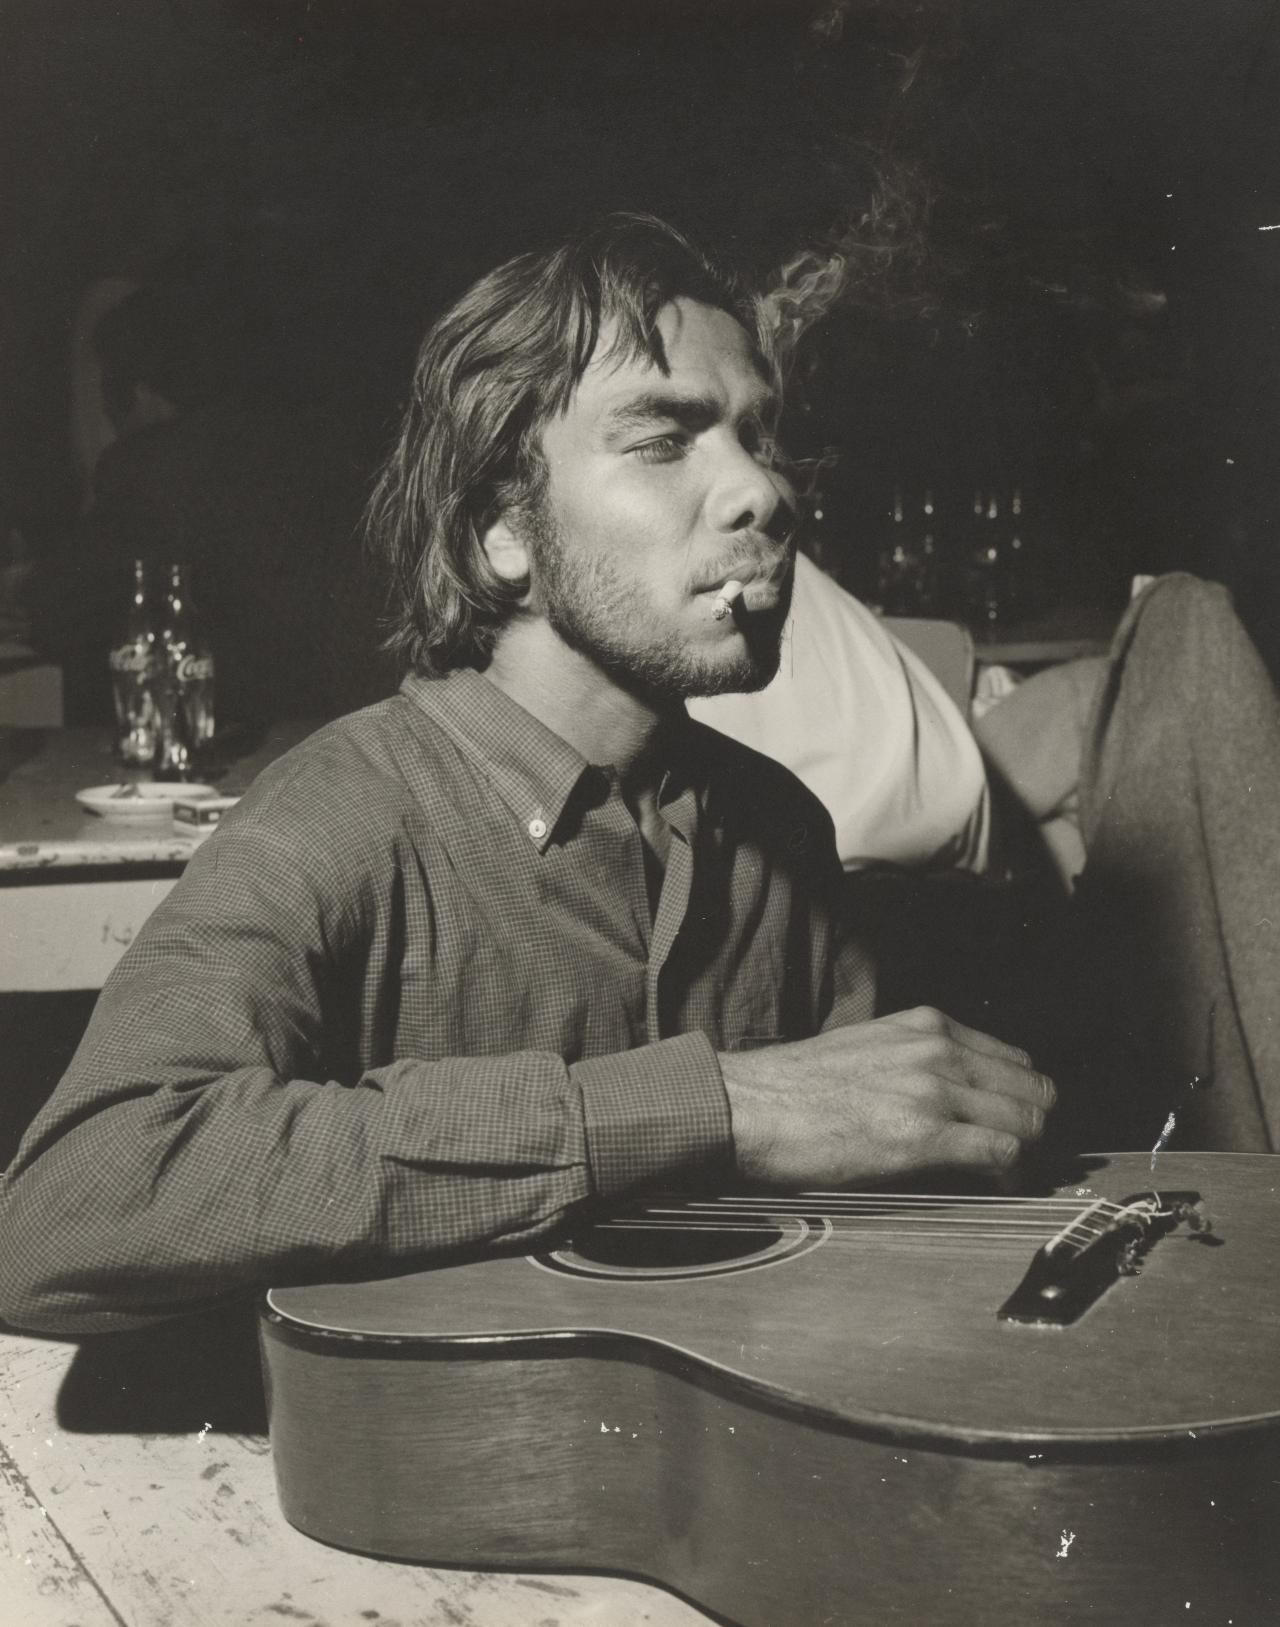 No title (Hernando's Hideaway, young man smoking with guitar)